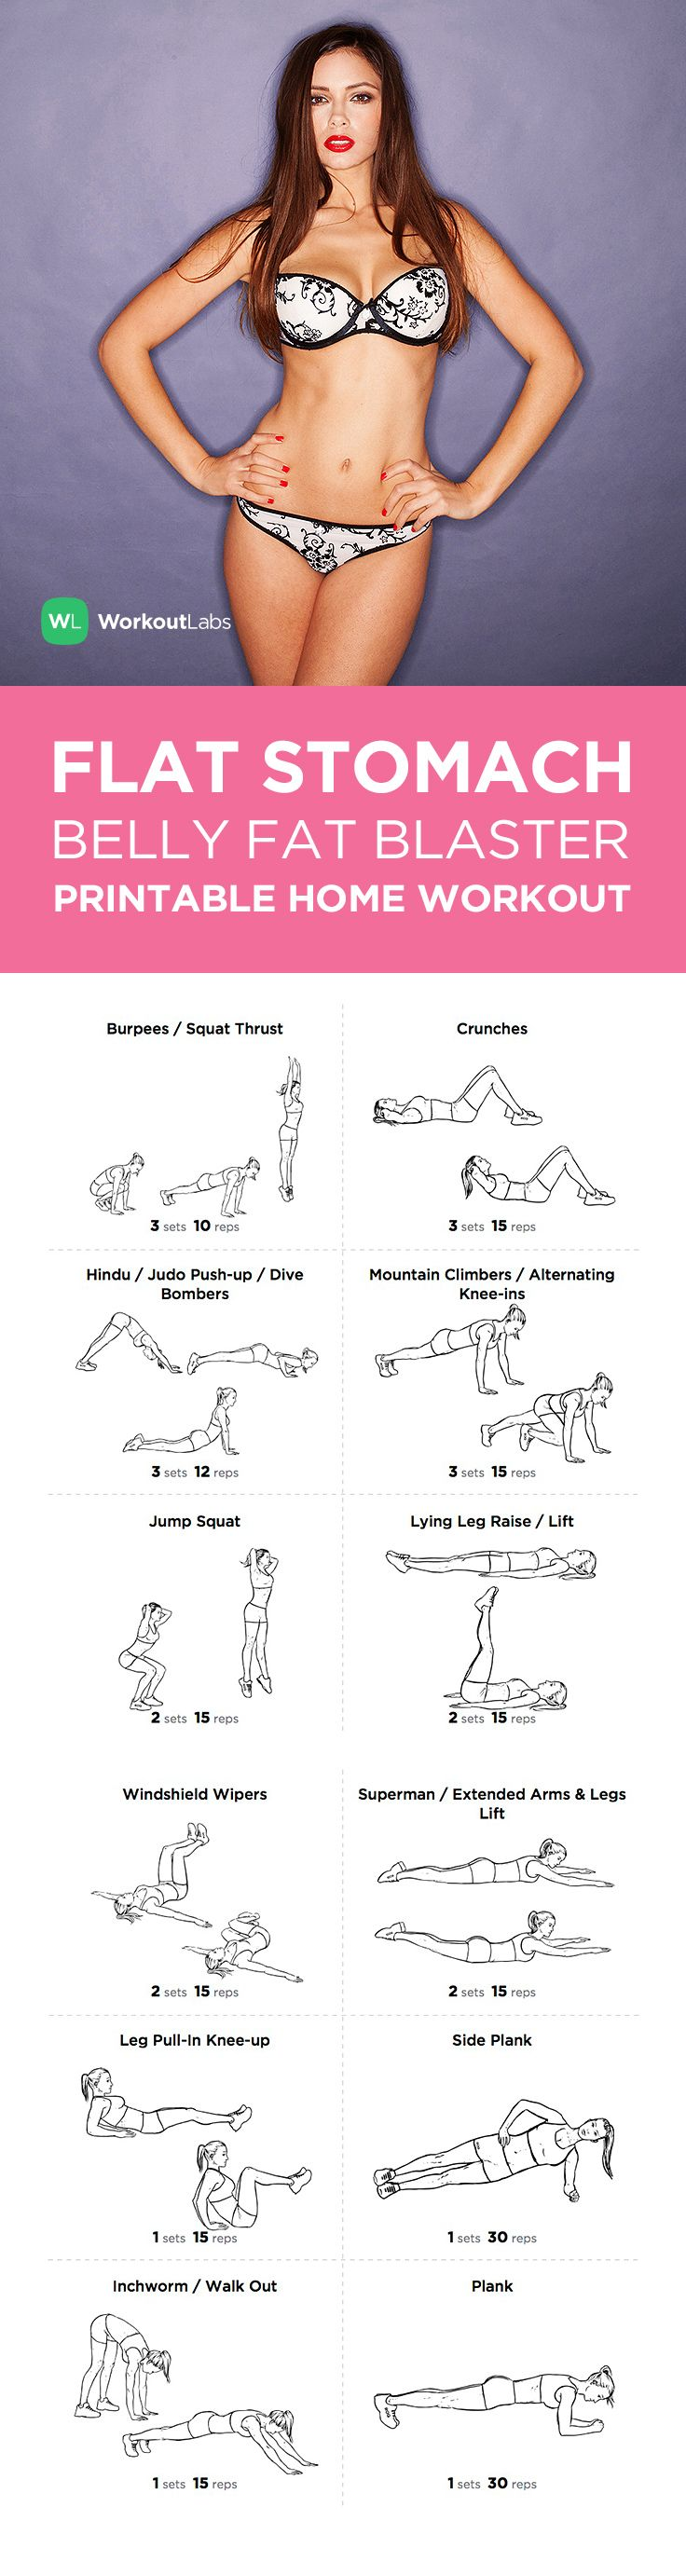 The Flat Stomach Belly Fat Blaster Printable Exercise Plan – Looking ...